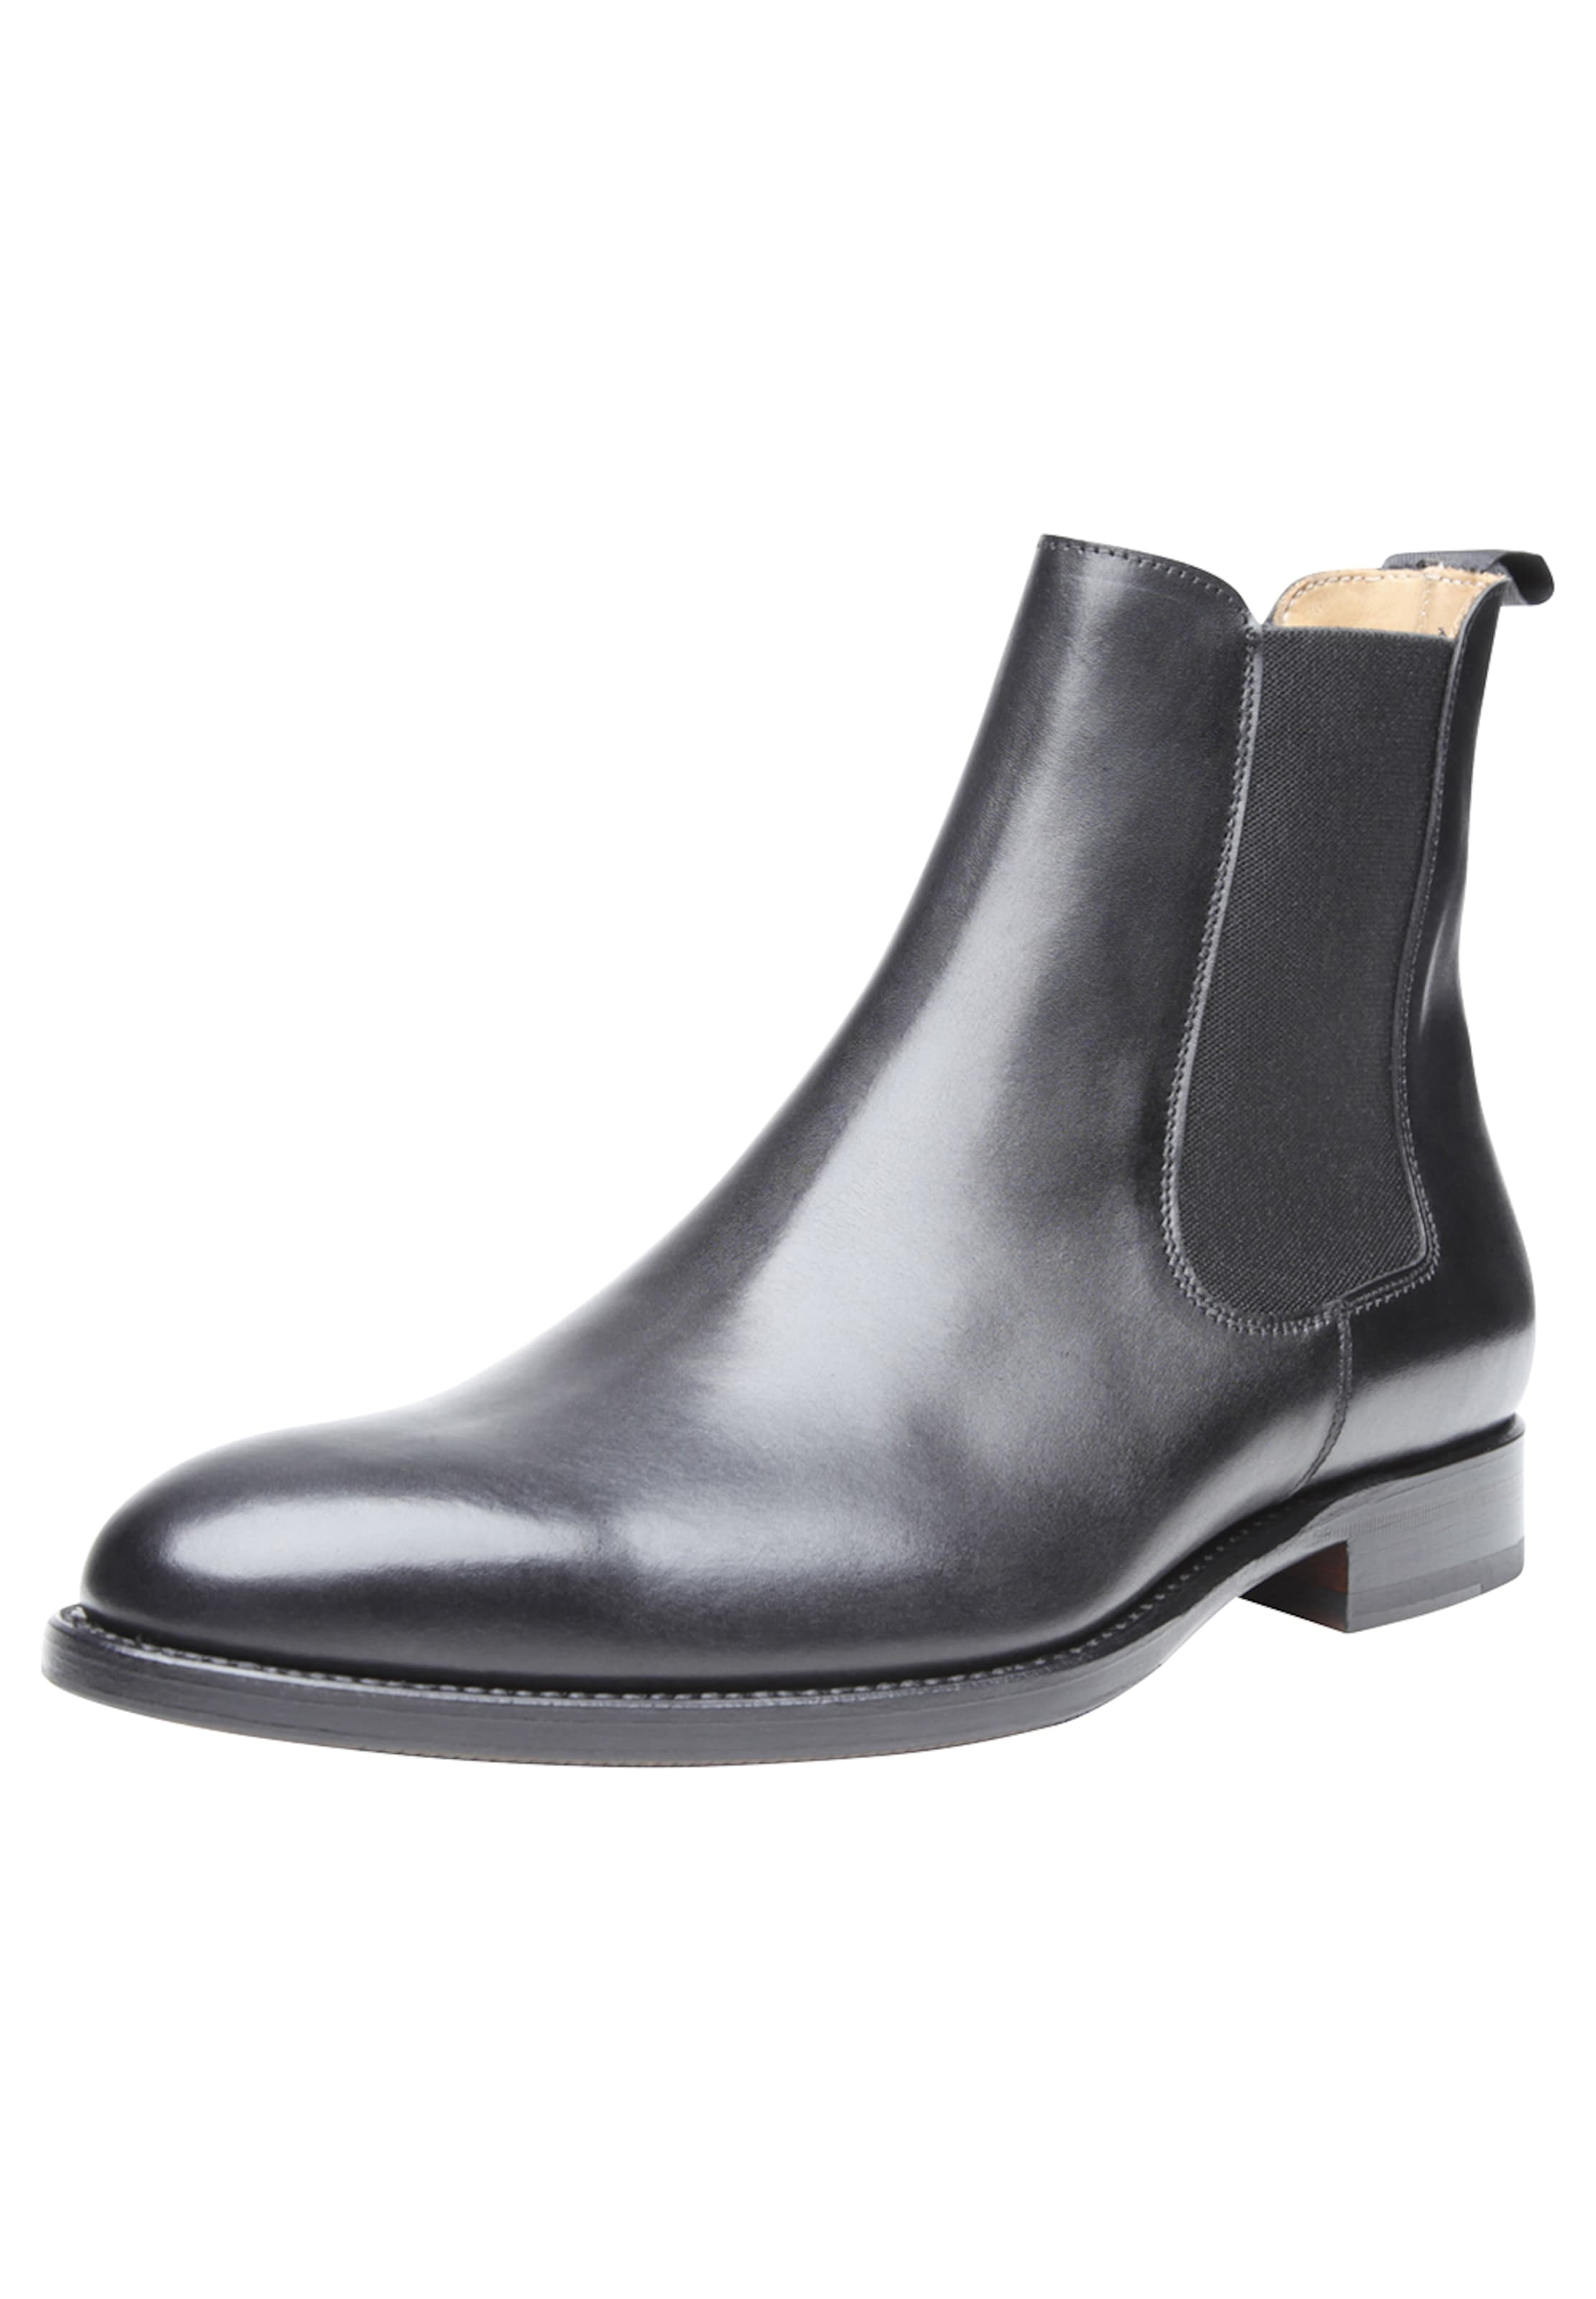 'no643' In Boots Shoepassion Shoepassion Boots Schwarz Y6If7mgyvb